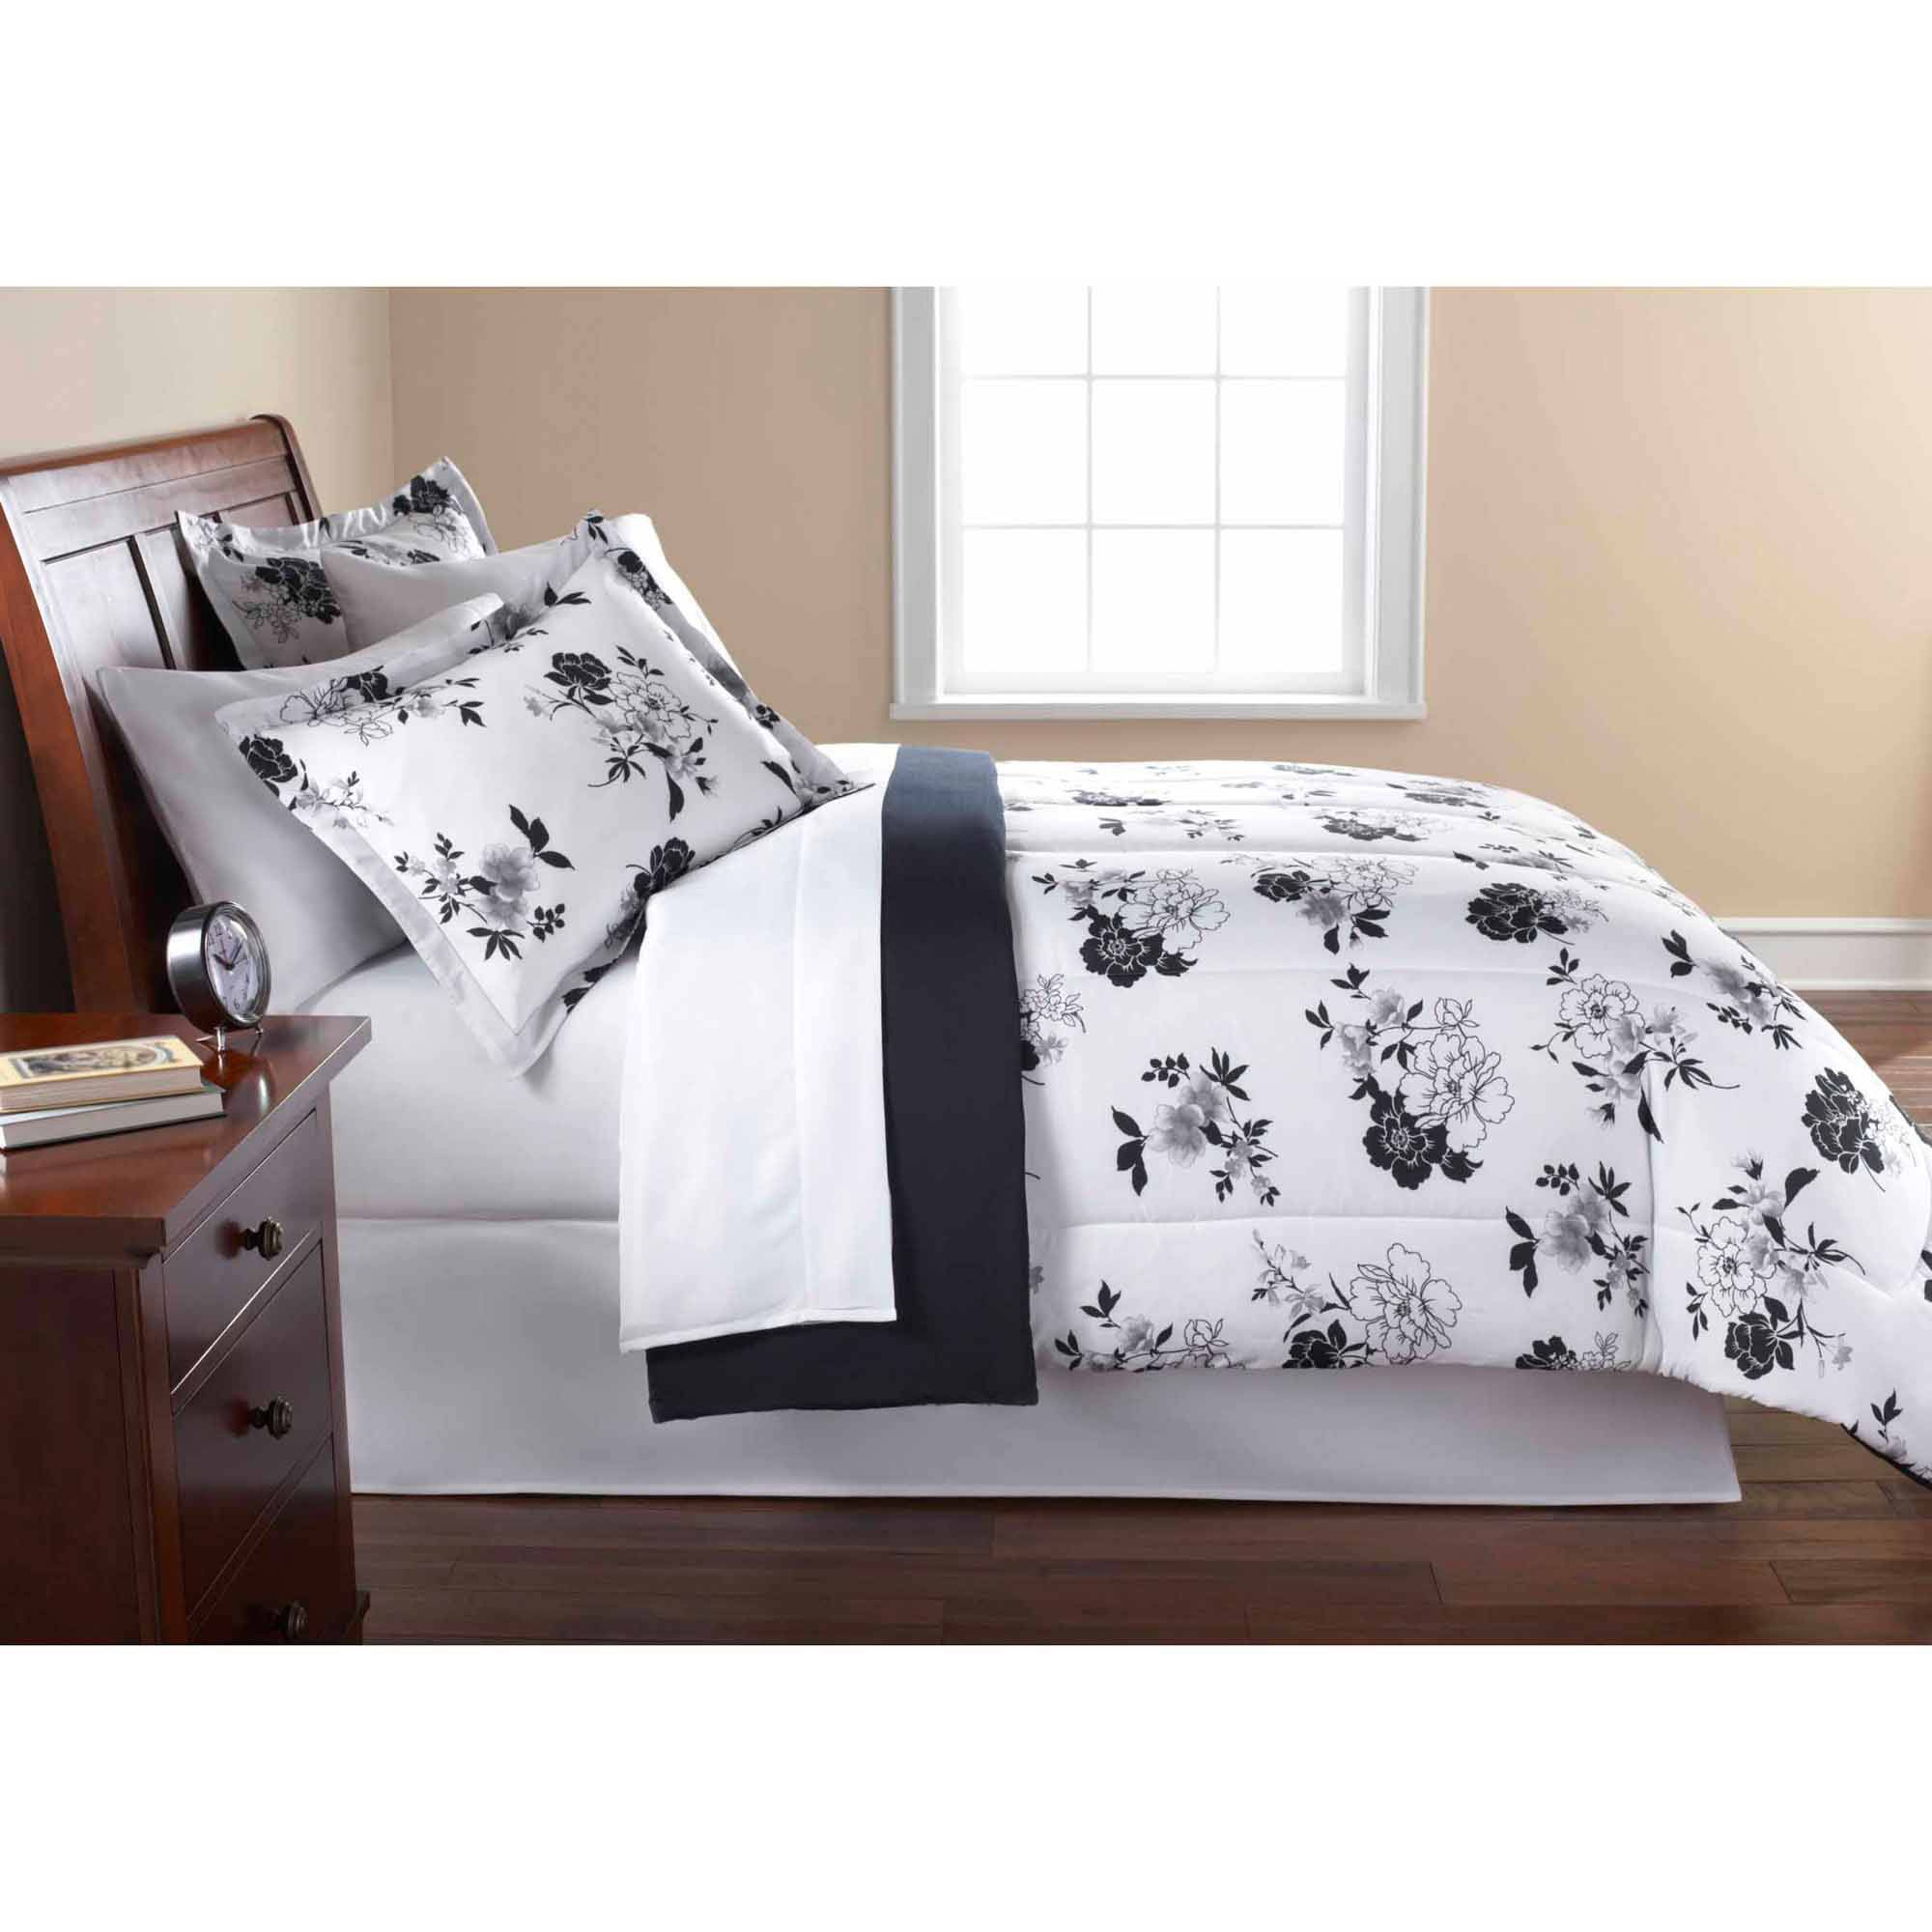 Mainstays Black and White Floral Bed in a Bag Bedding Comforter ...